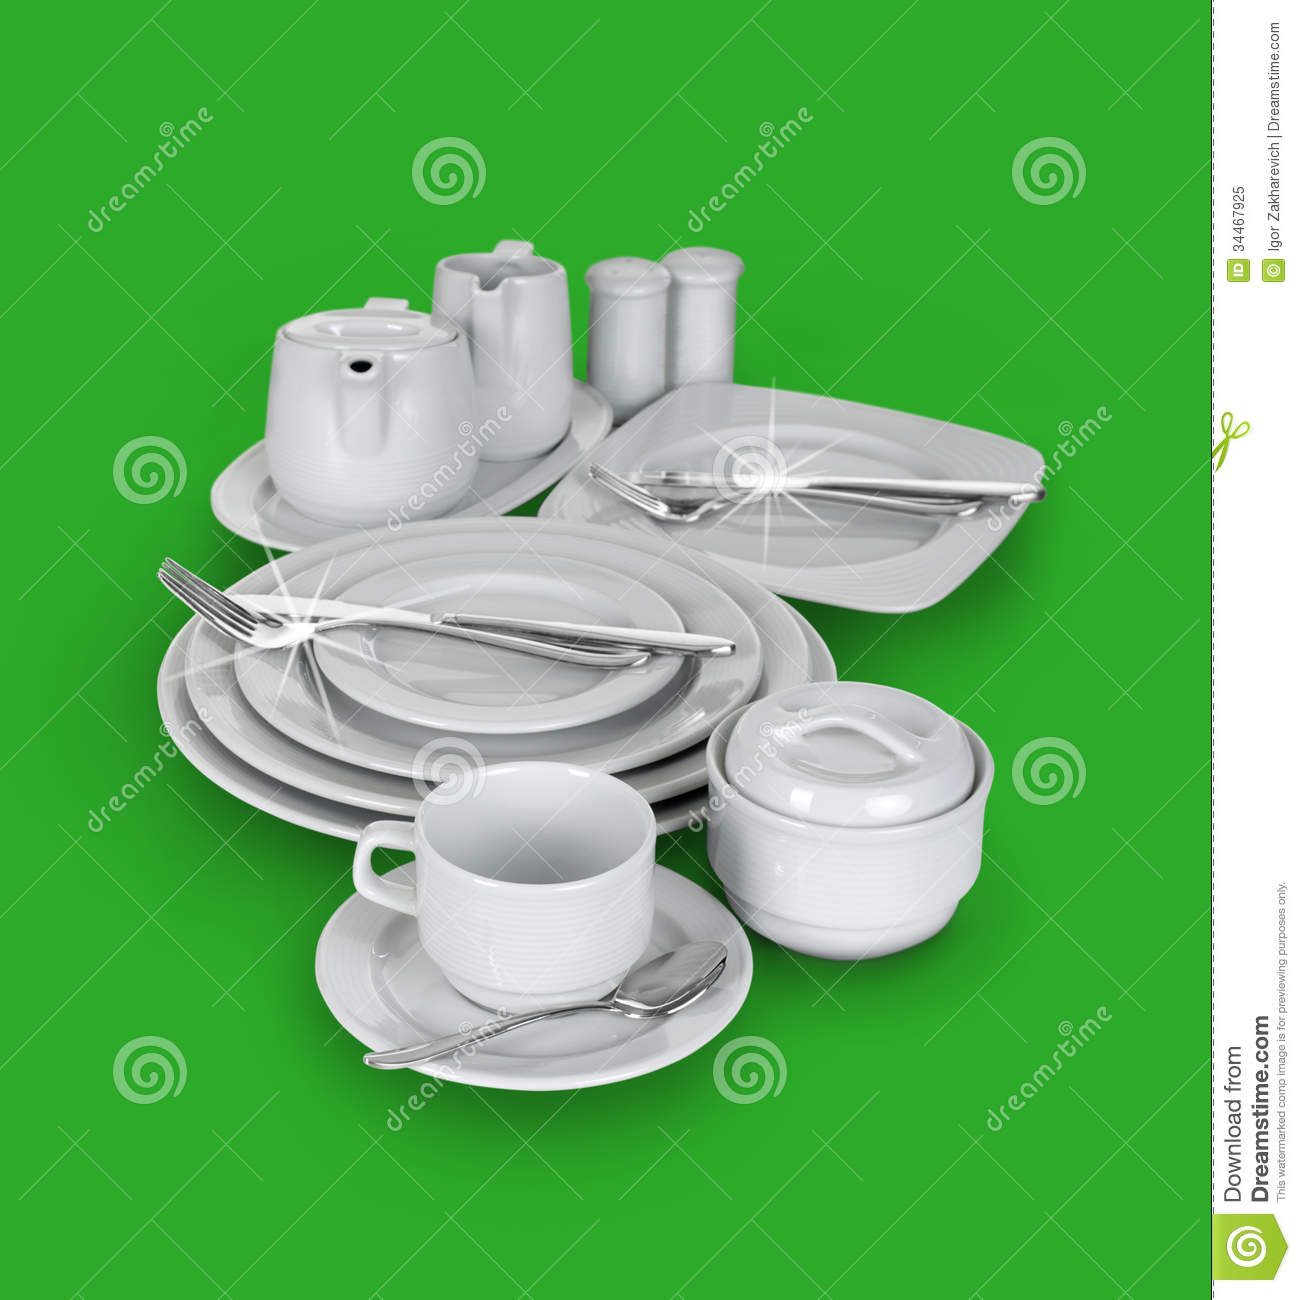 kitchen cups and plates lights under cabinets set of glasses royalty free stock